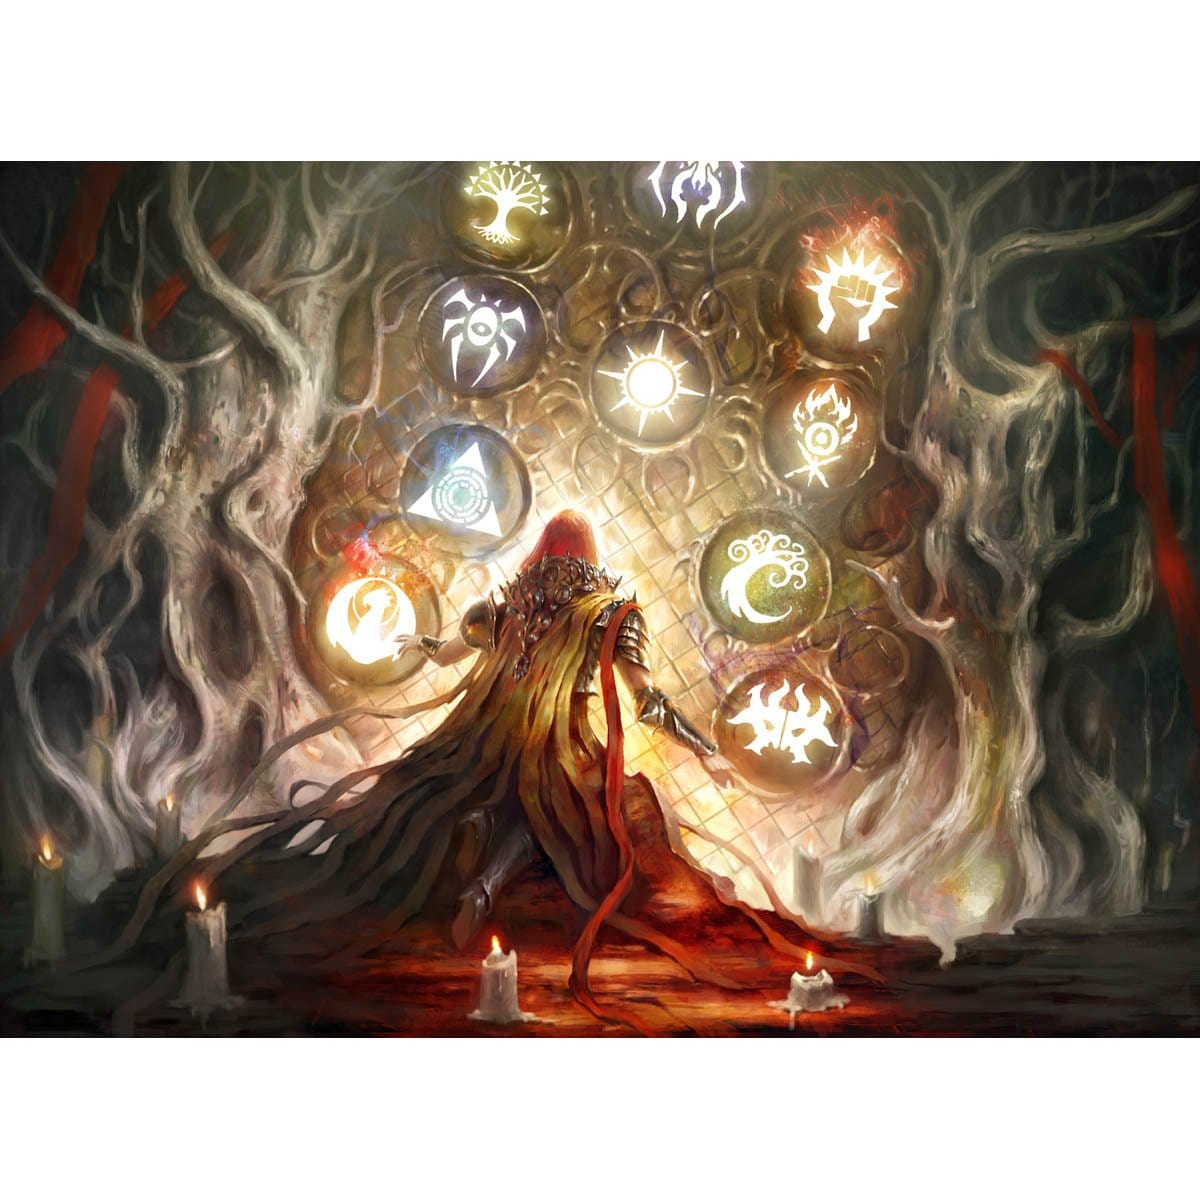 Awe for the Guilds Print - Print - Original Magic Art - Accessories for Magic the Gathering and other card games